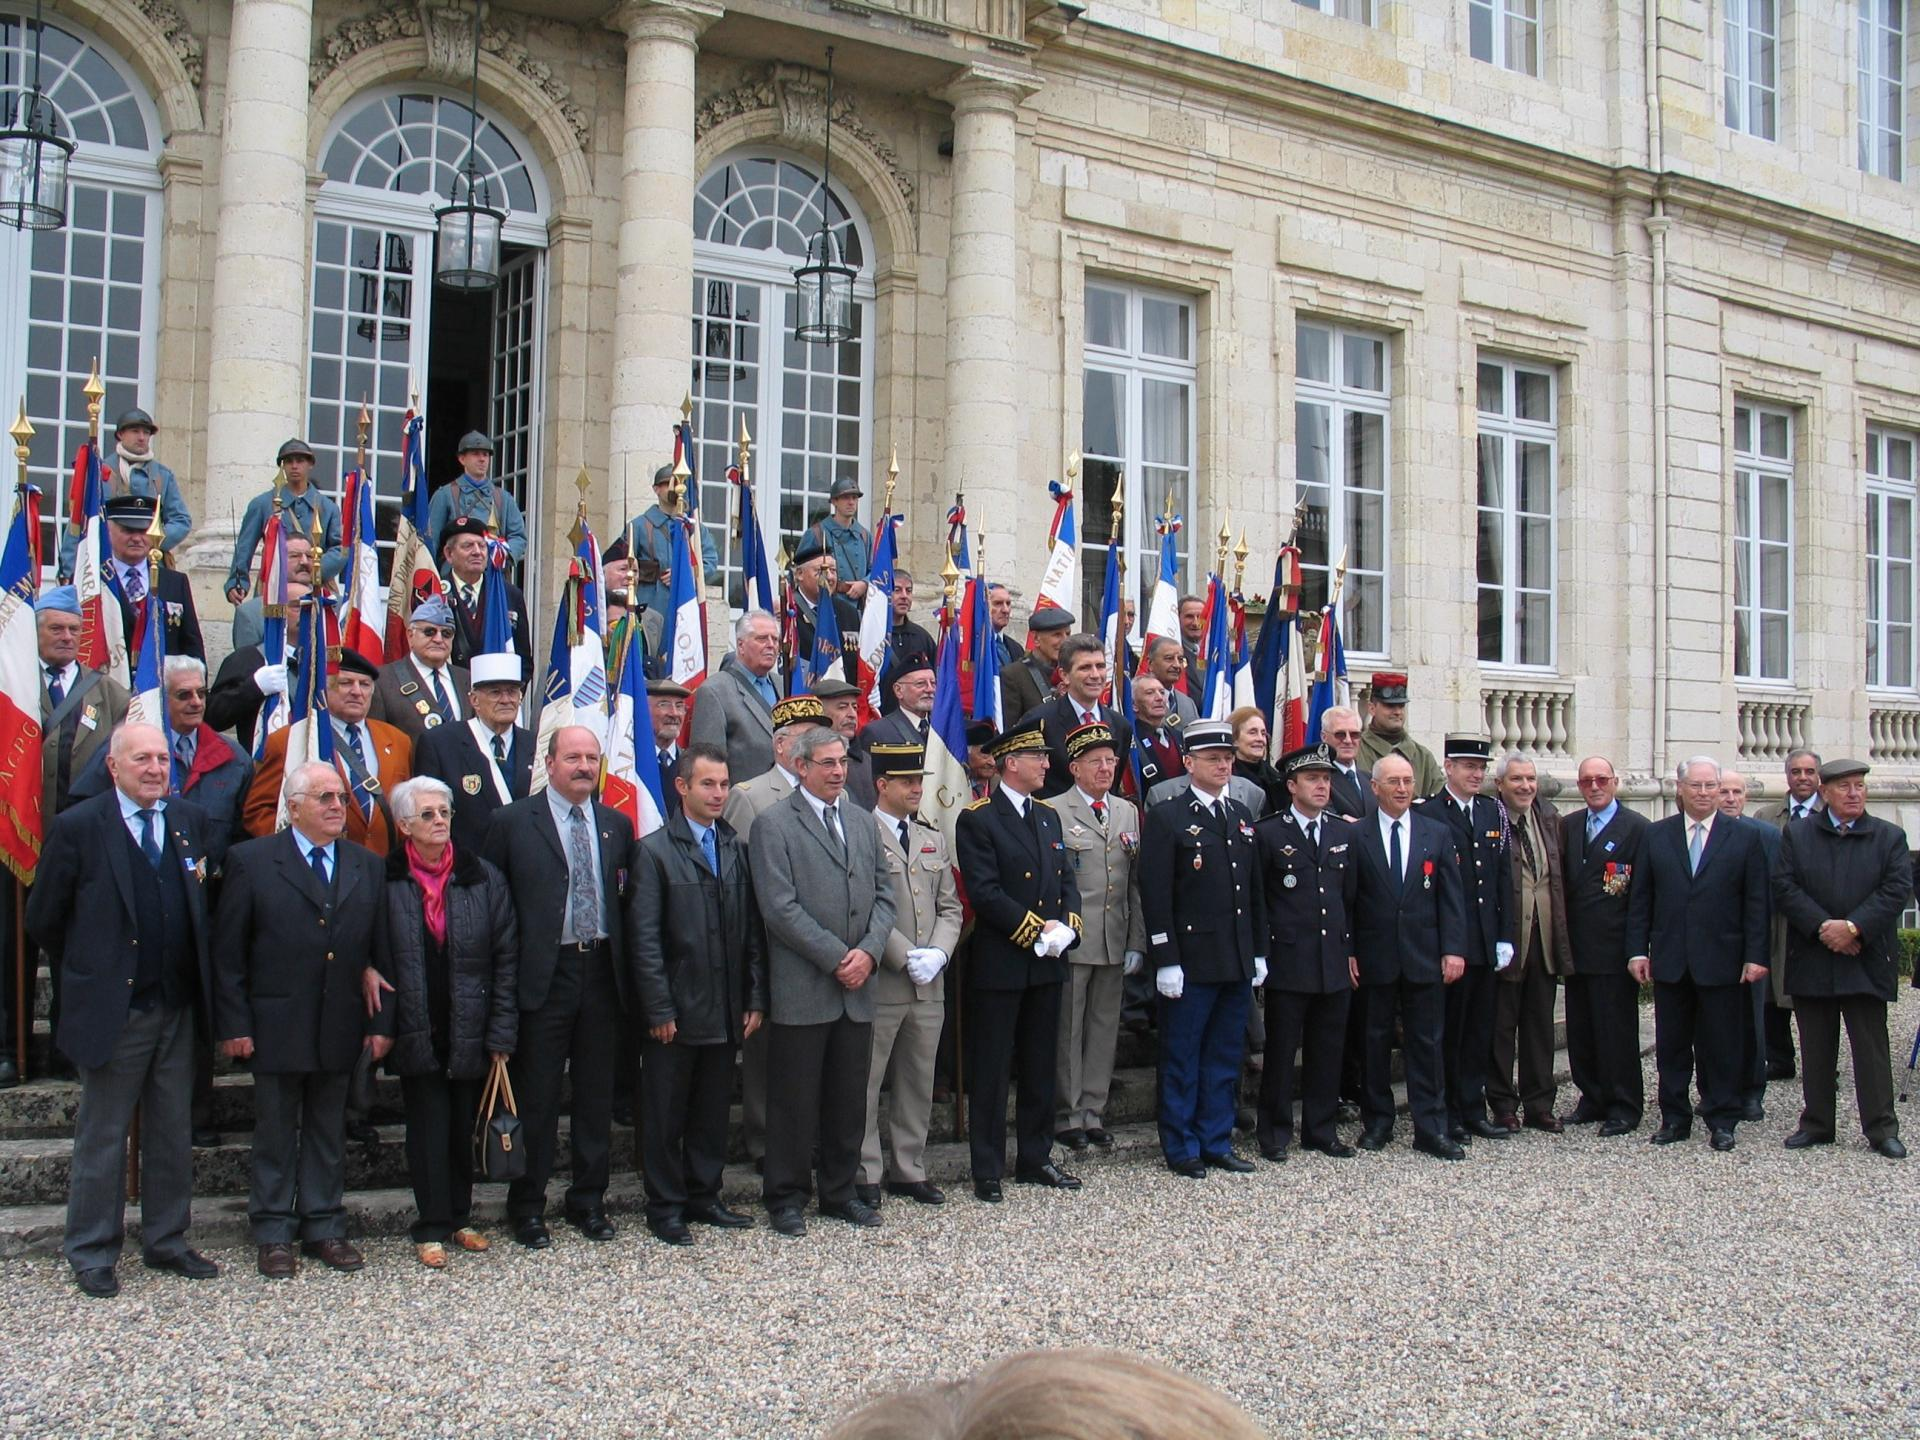 Officiels devant la prefecture 1